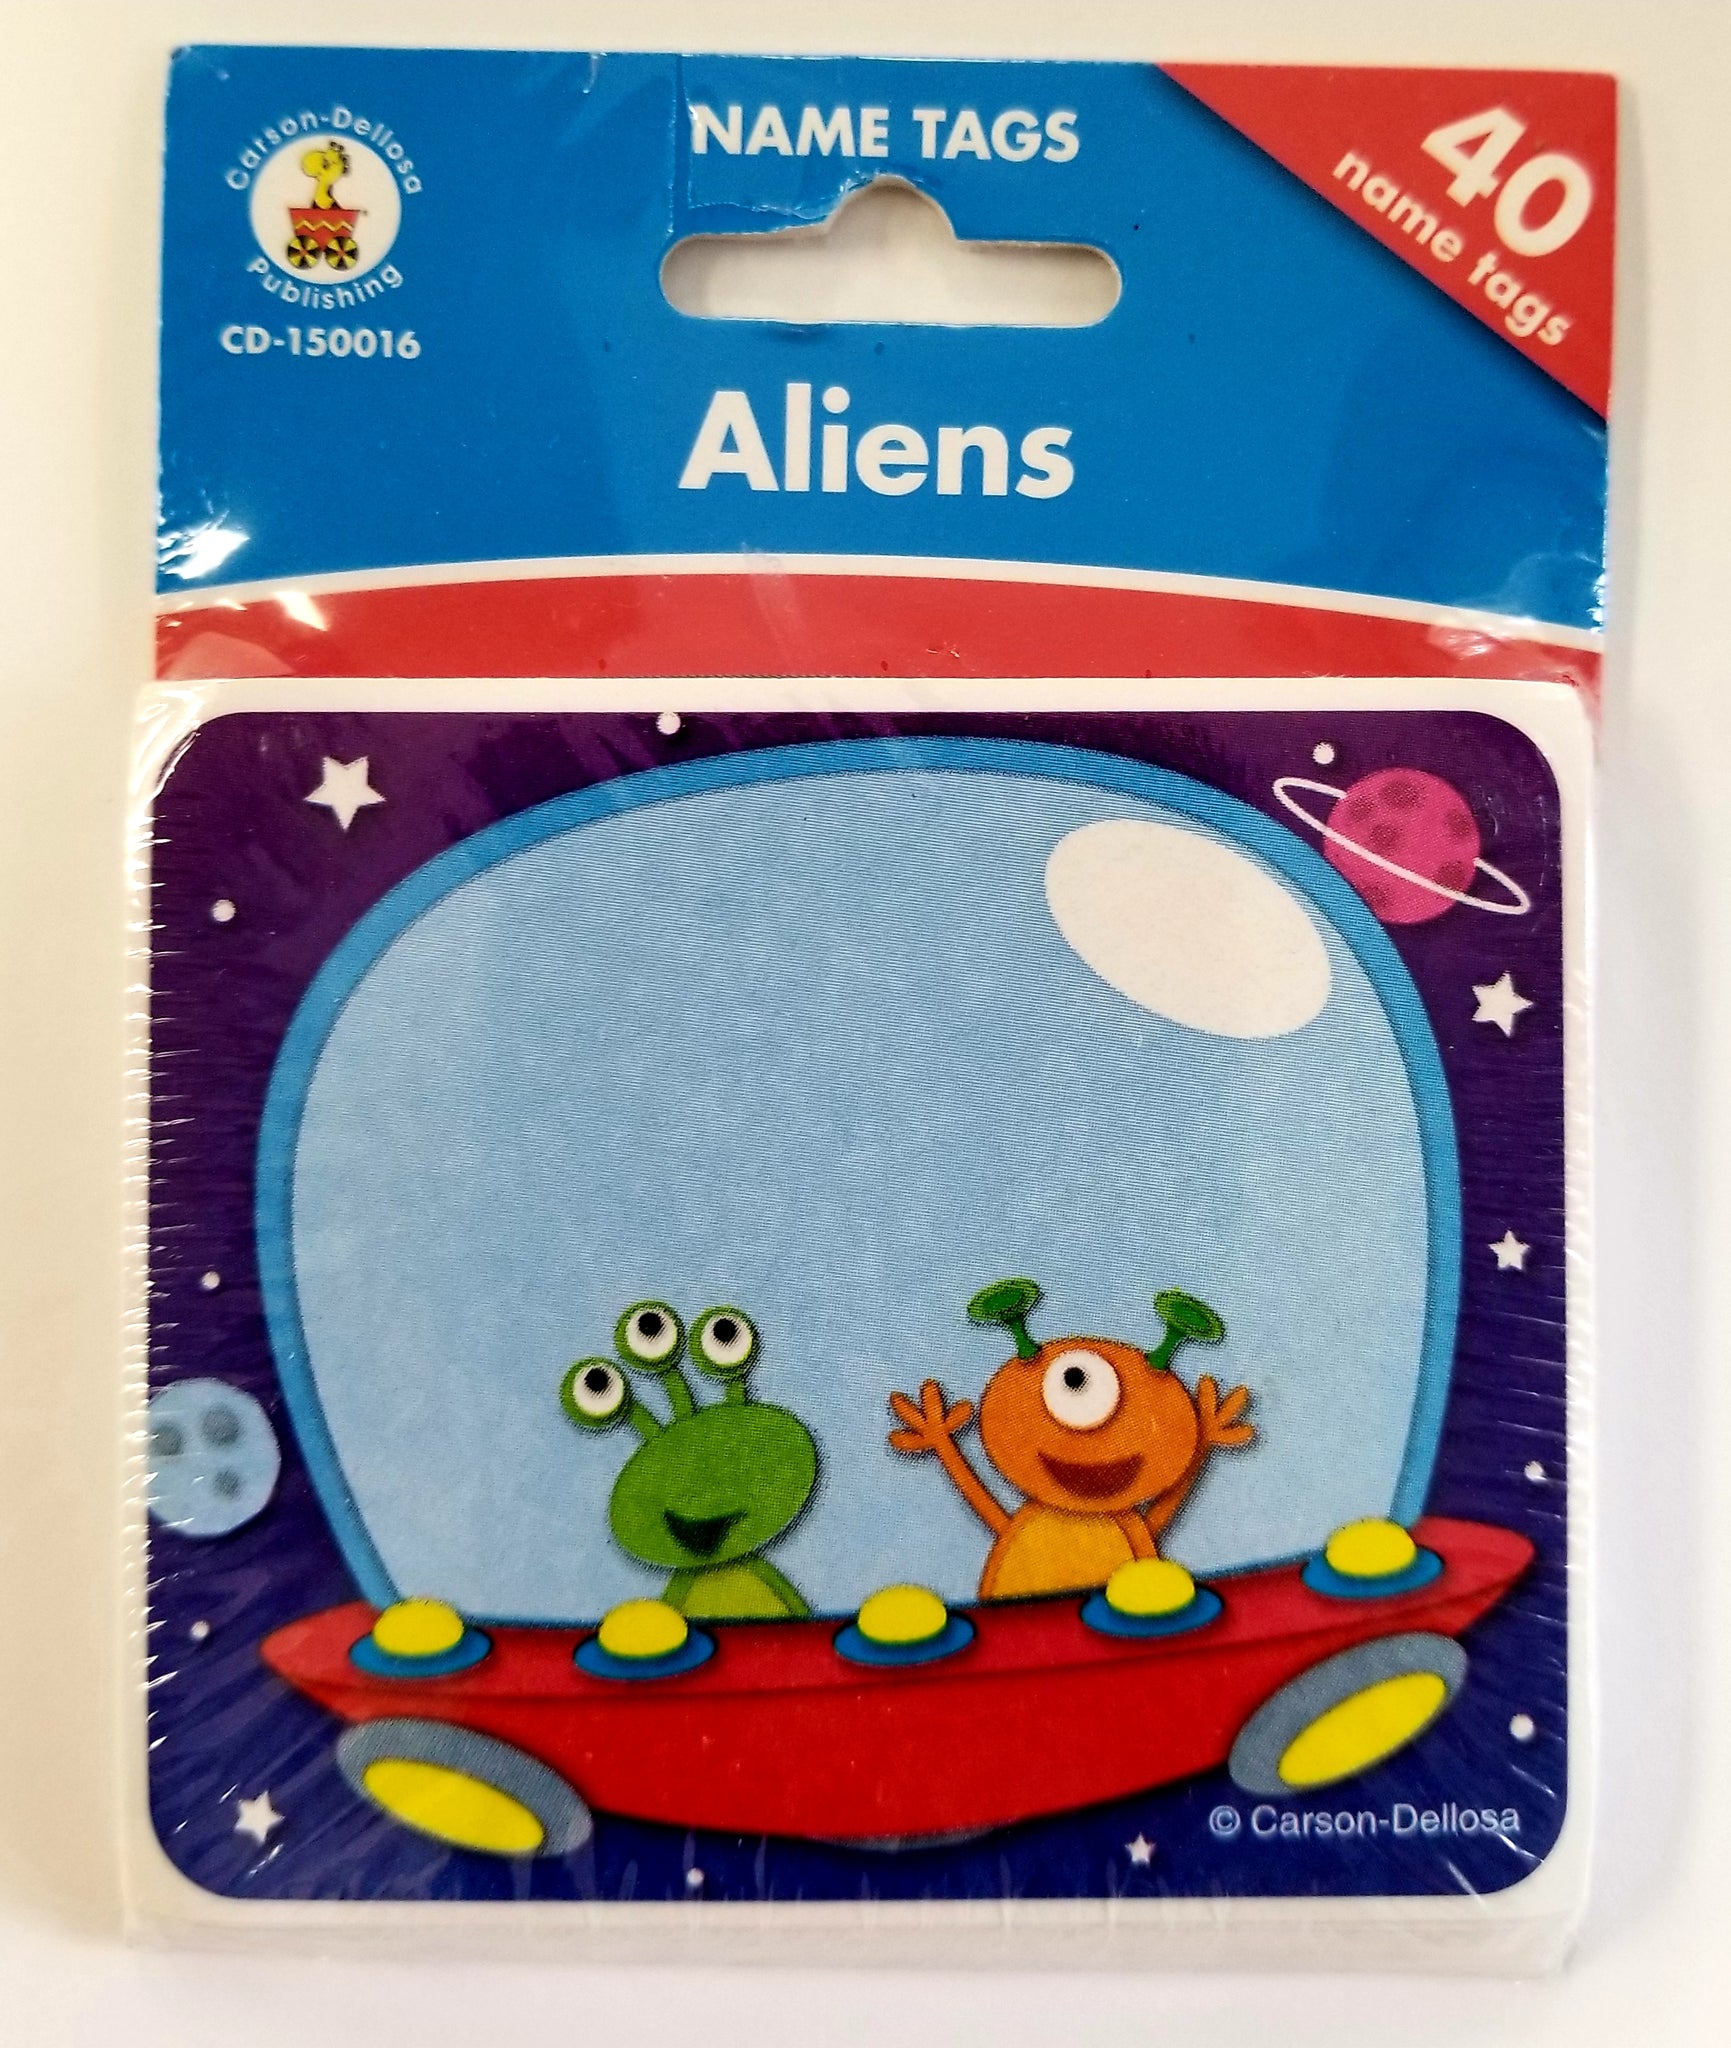 Carson Dellosa Aliens Child Nametags Labels, Set of 40  CD-150016